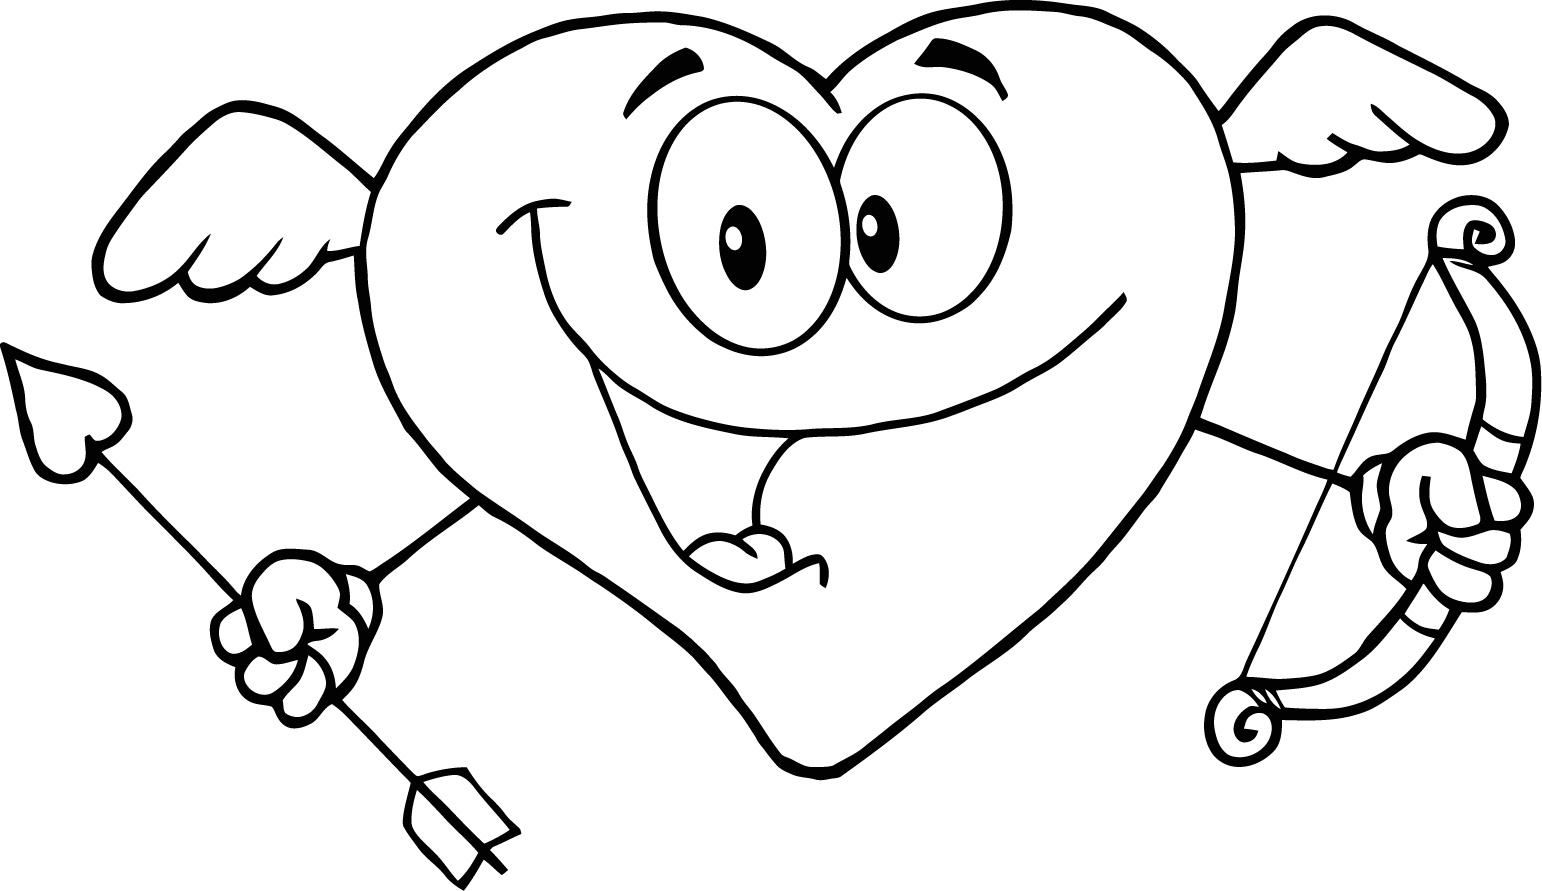 coloring pages childrens face - photo#23